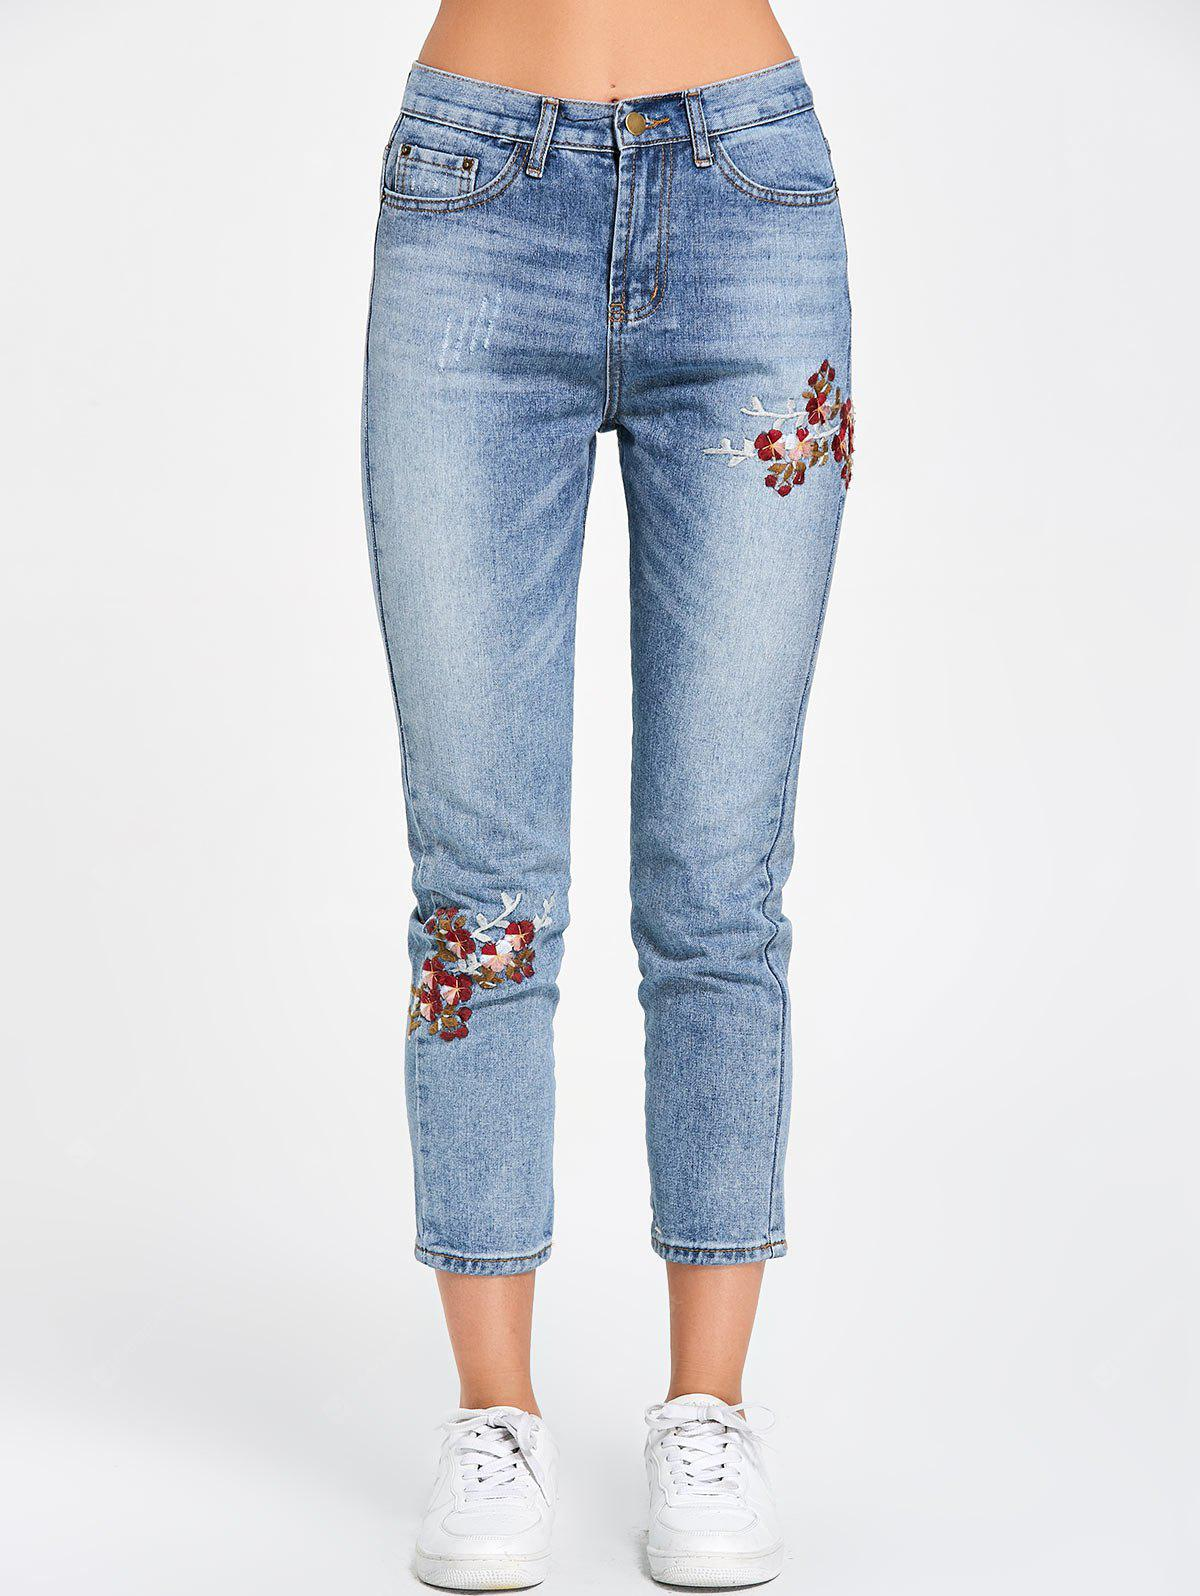 BLUE L Zipper Fly Floral Embroidered Jeans